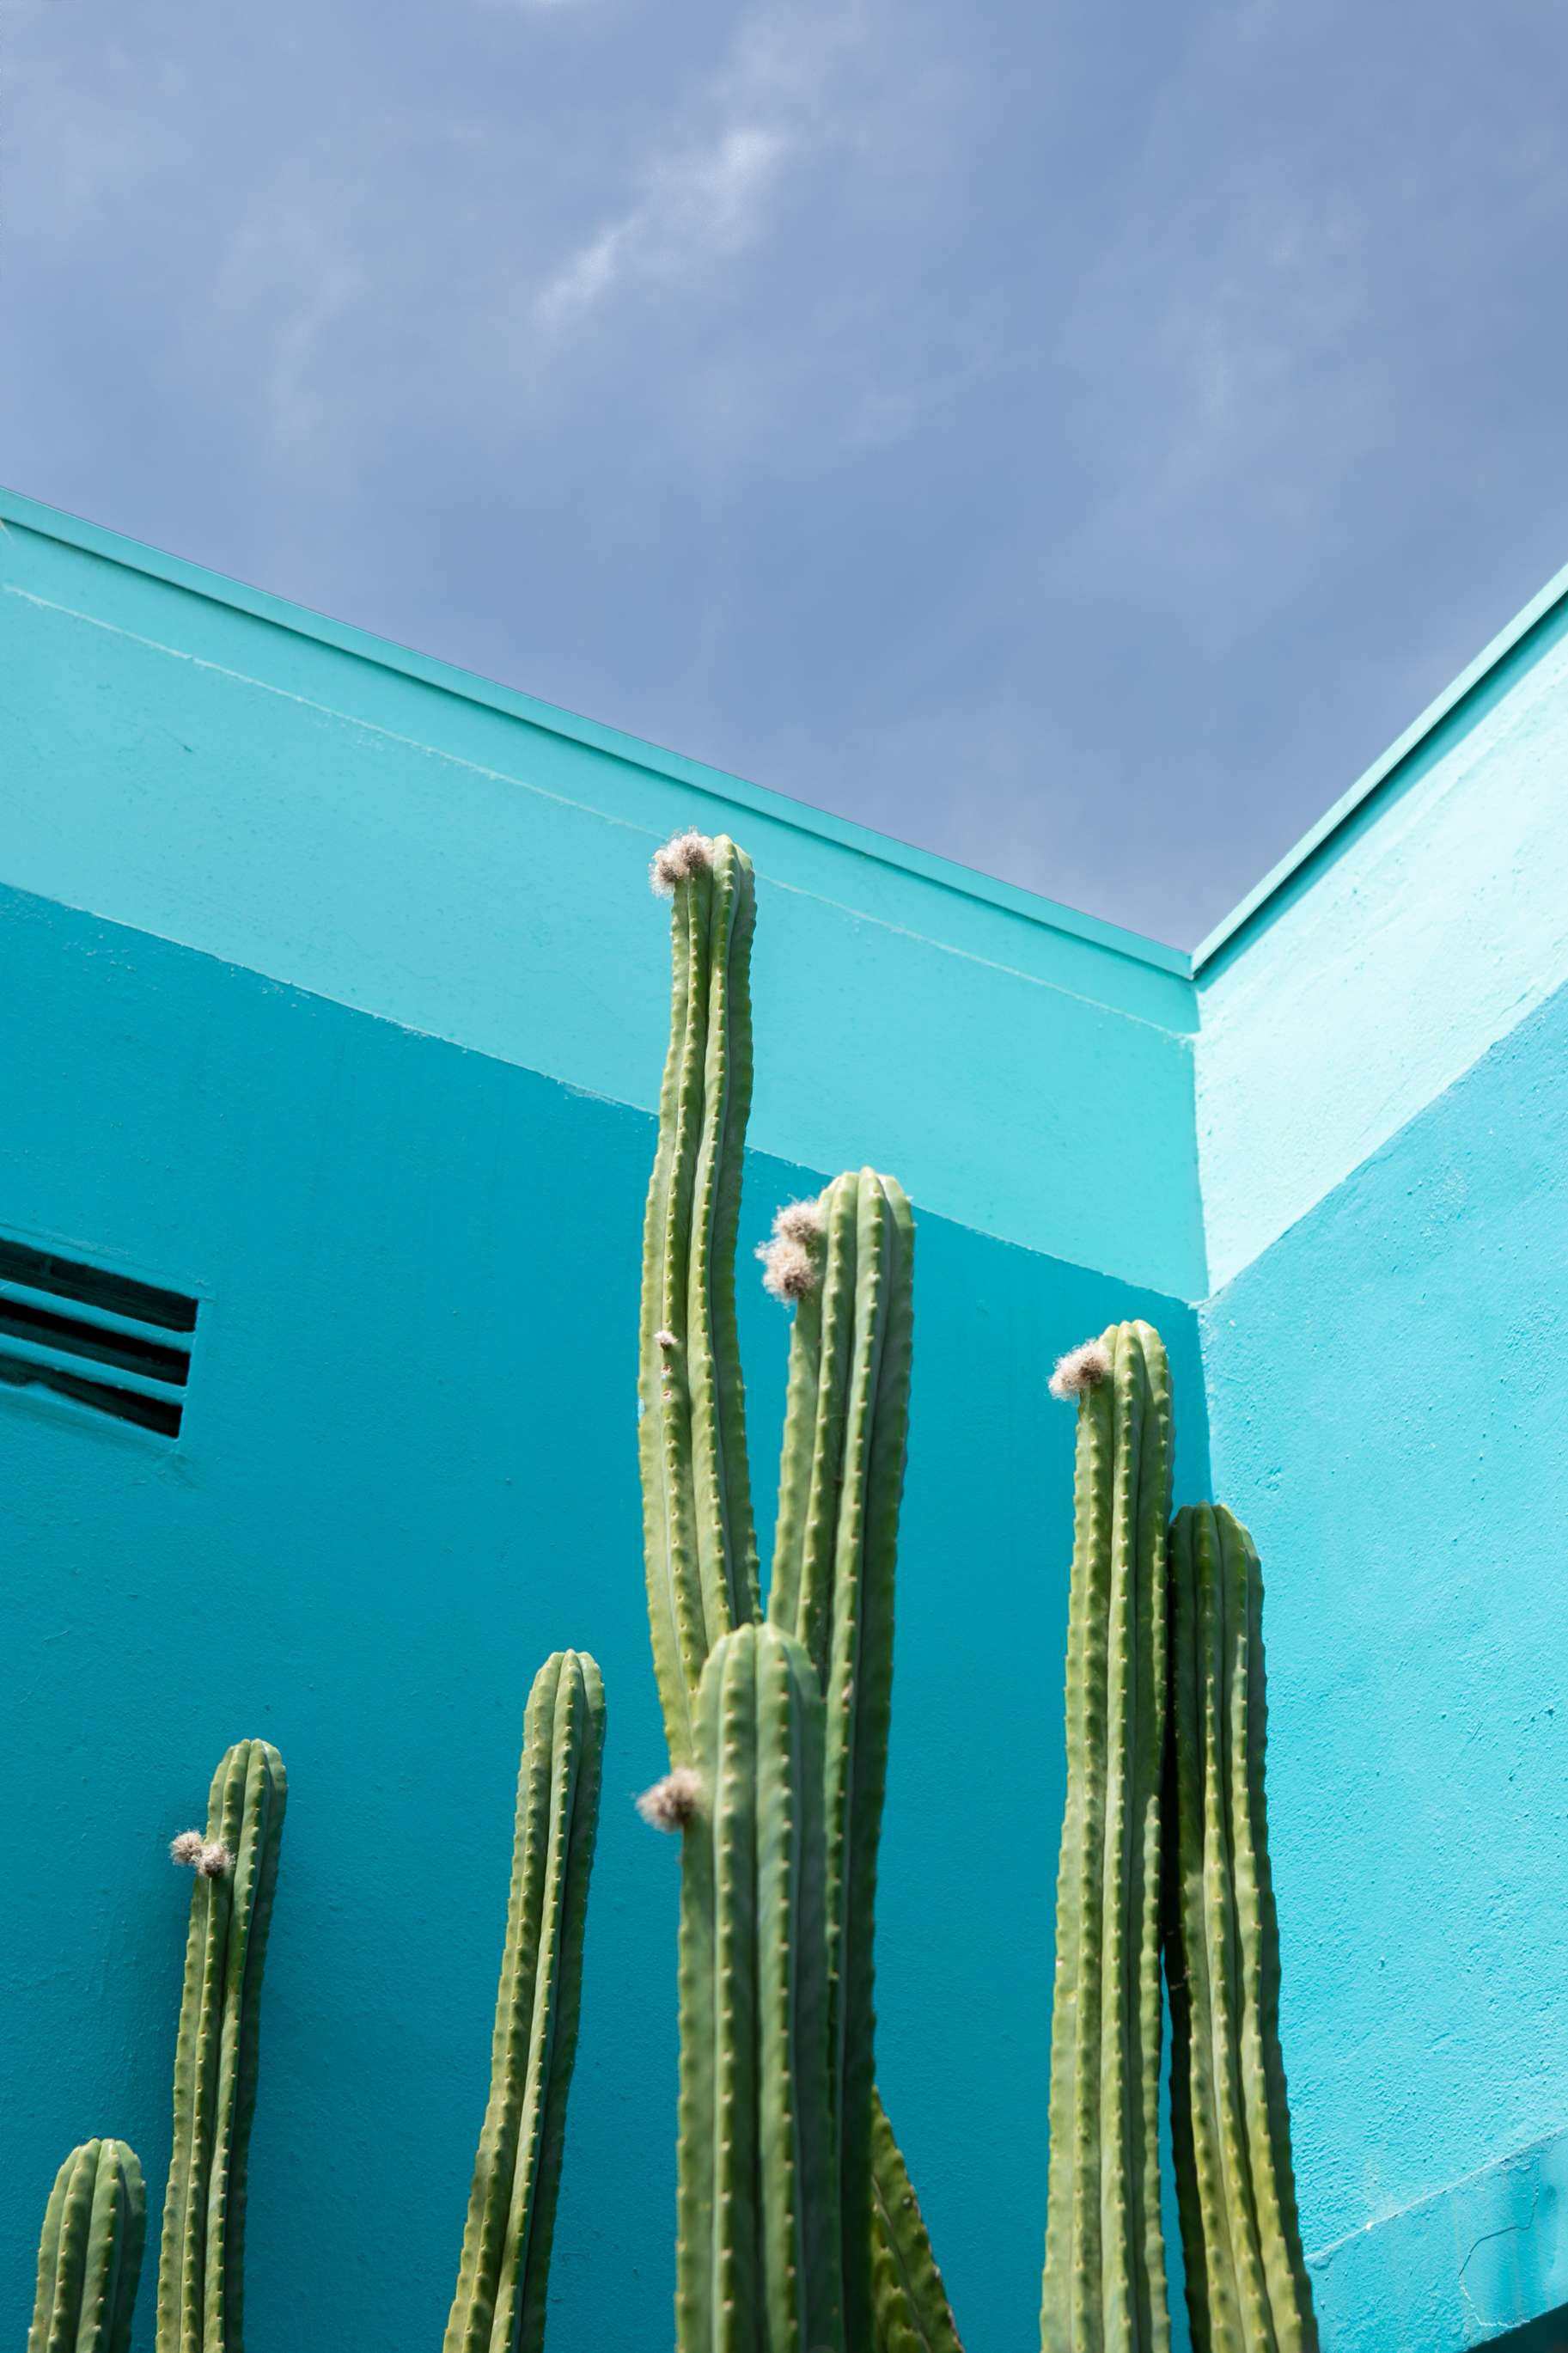 Cactus in Los Feliz, LA California. Photograph by Sarah Natsumi Moore